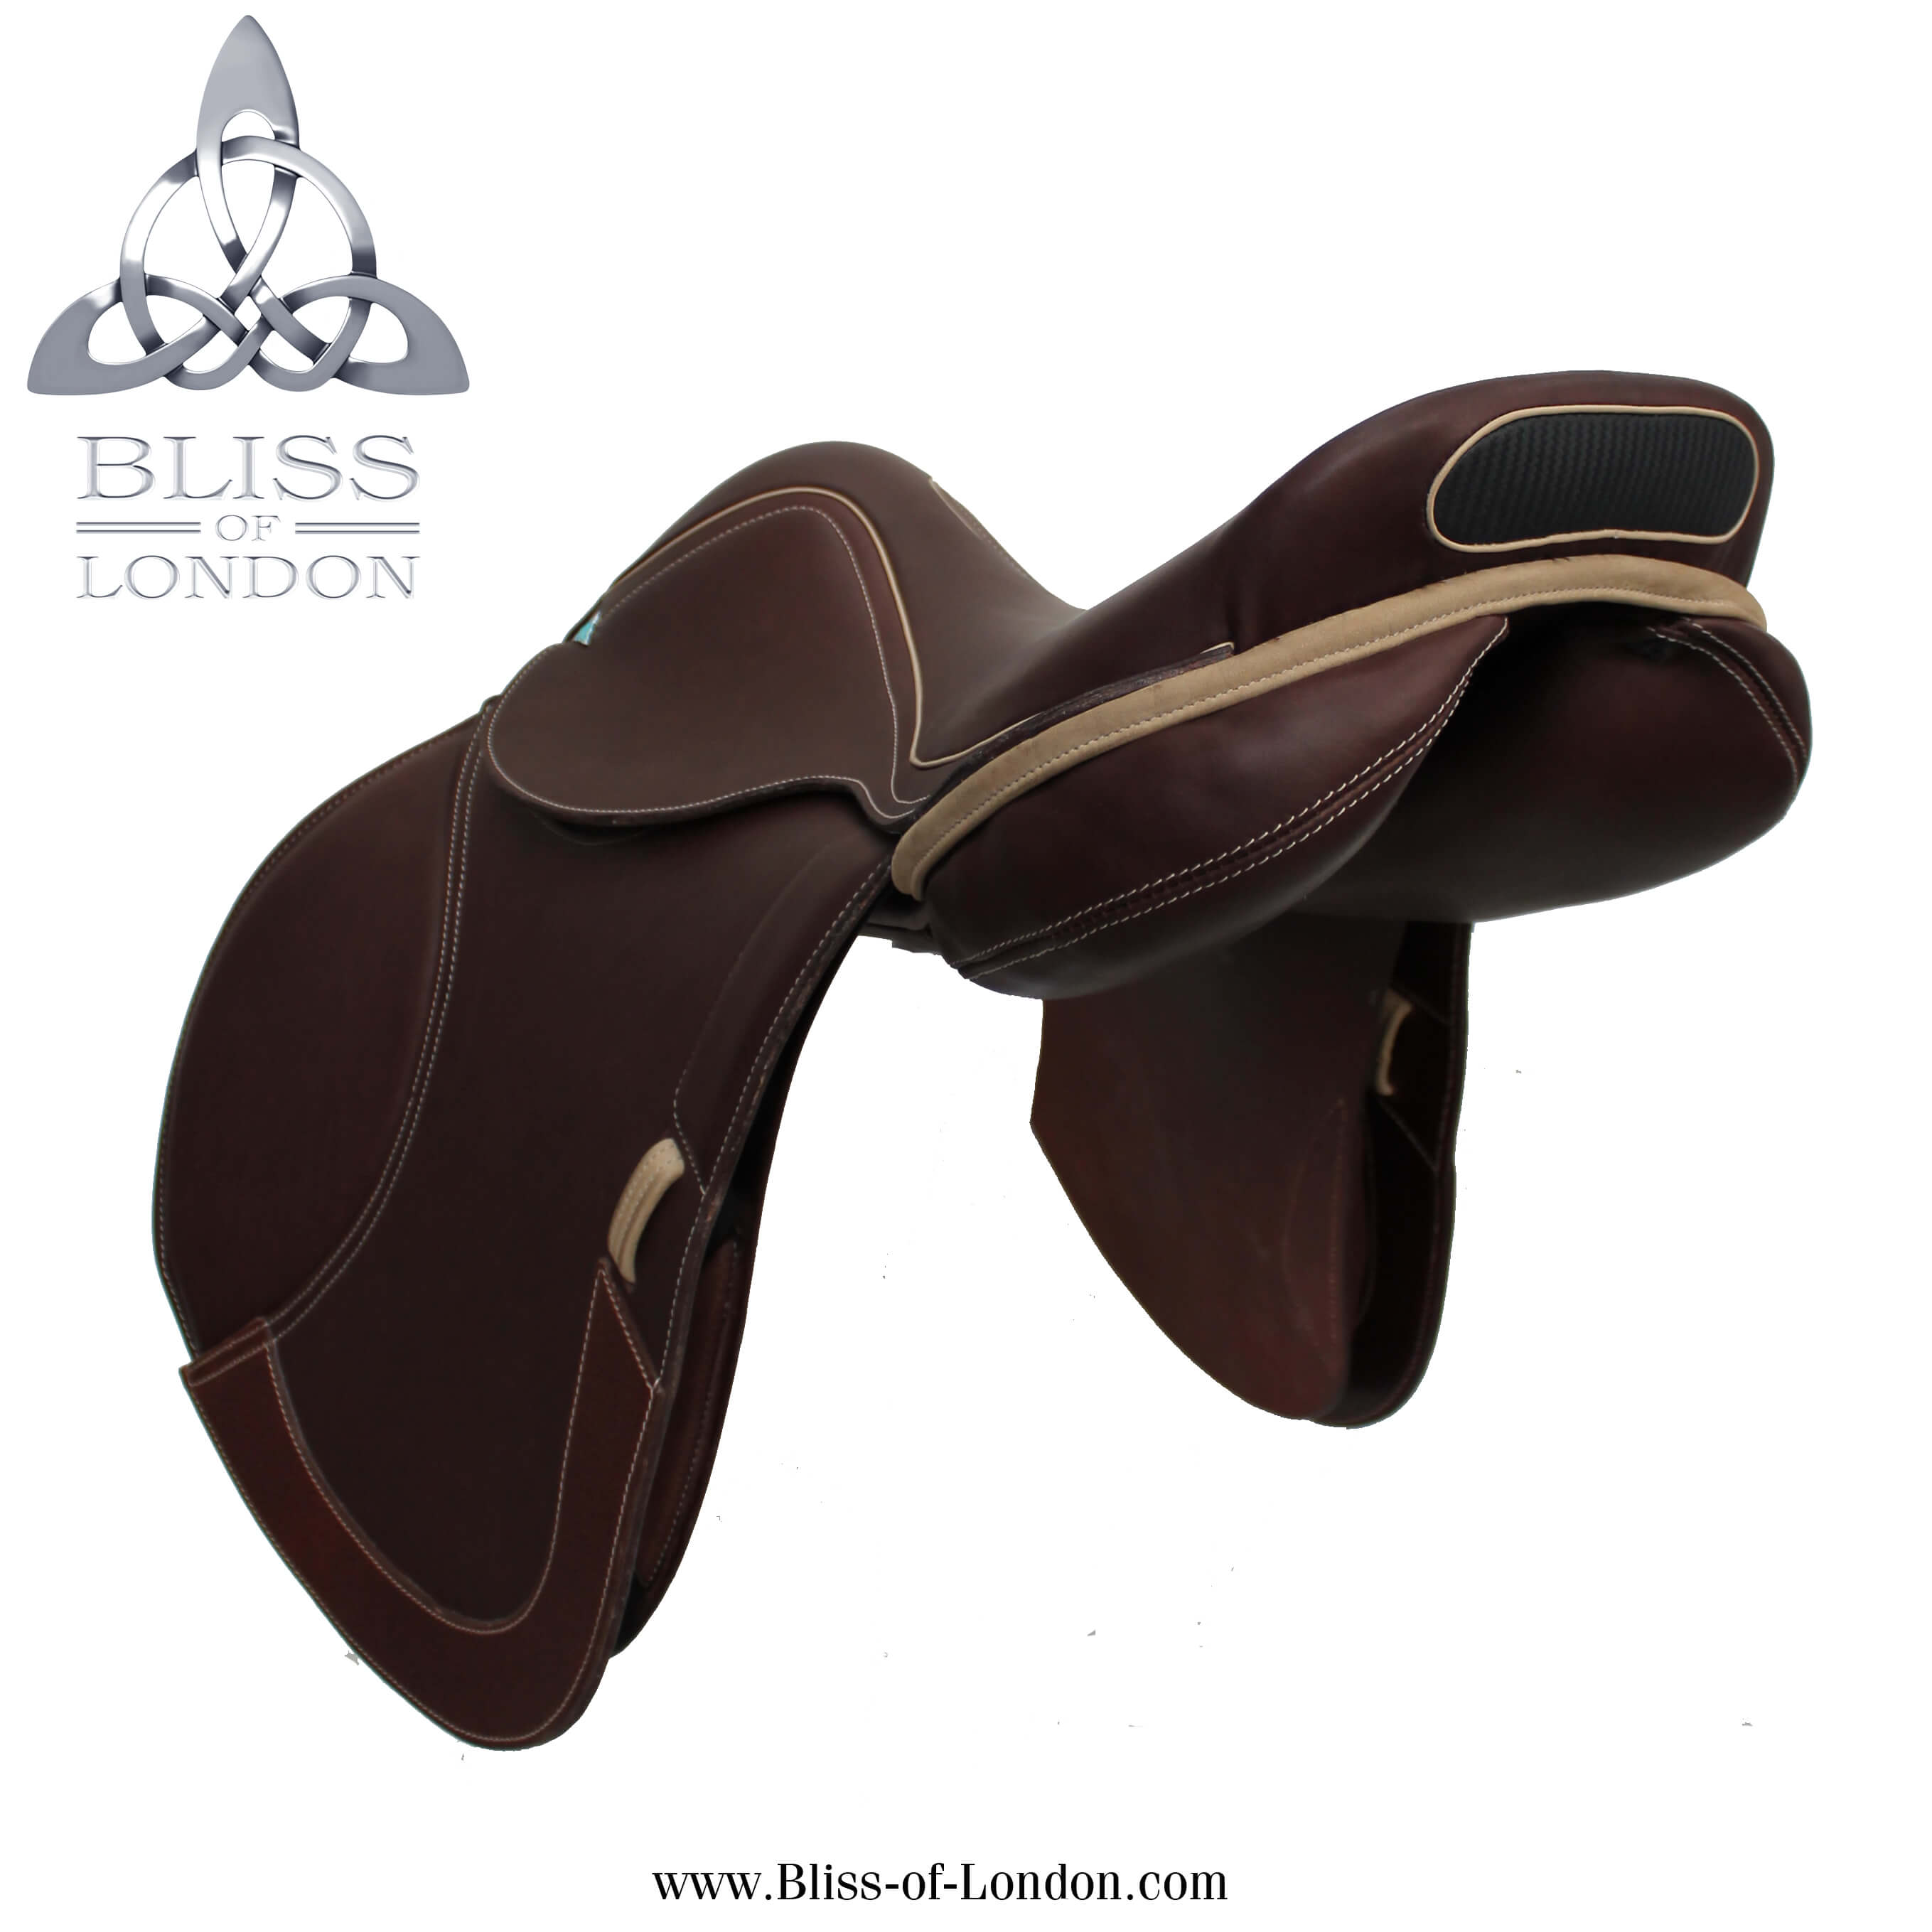 1AA Product page 1 - sportiva jump 34 571 Bliss Saddle Image Template2